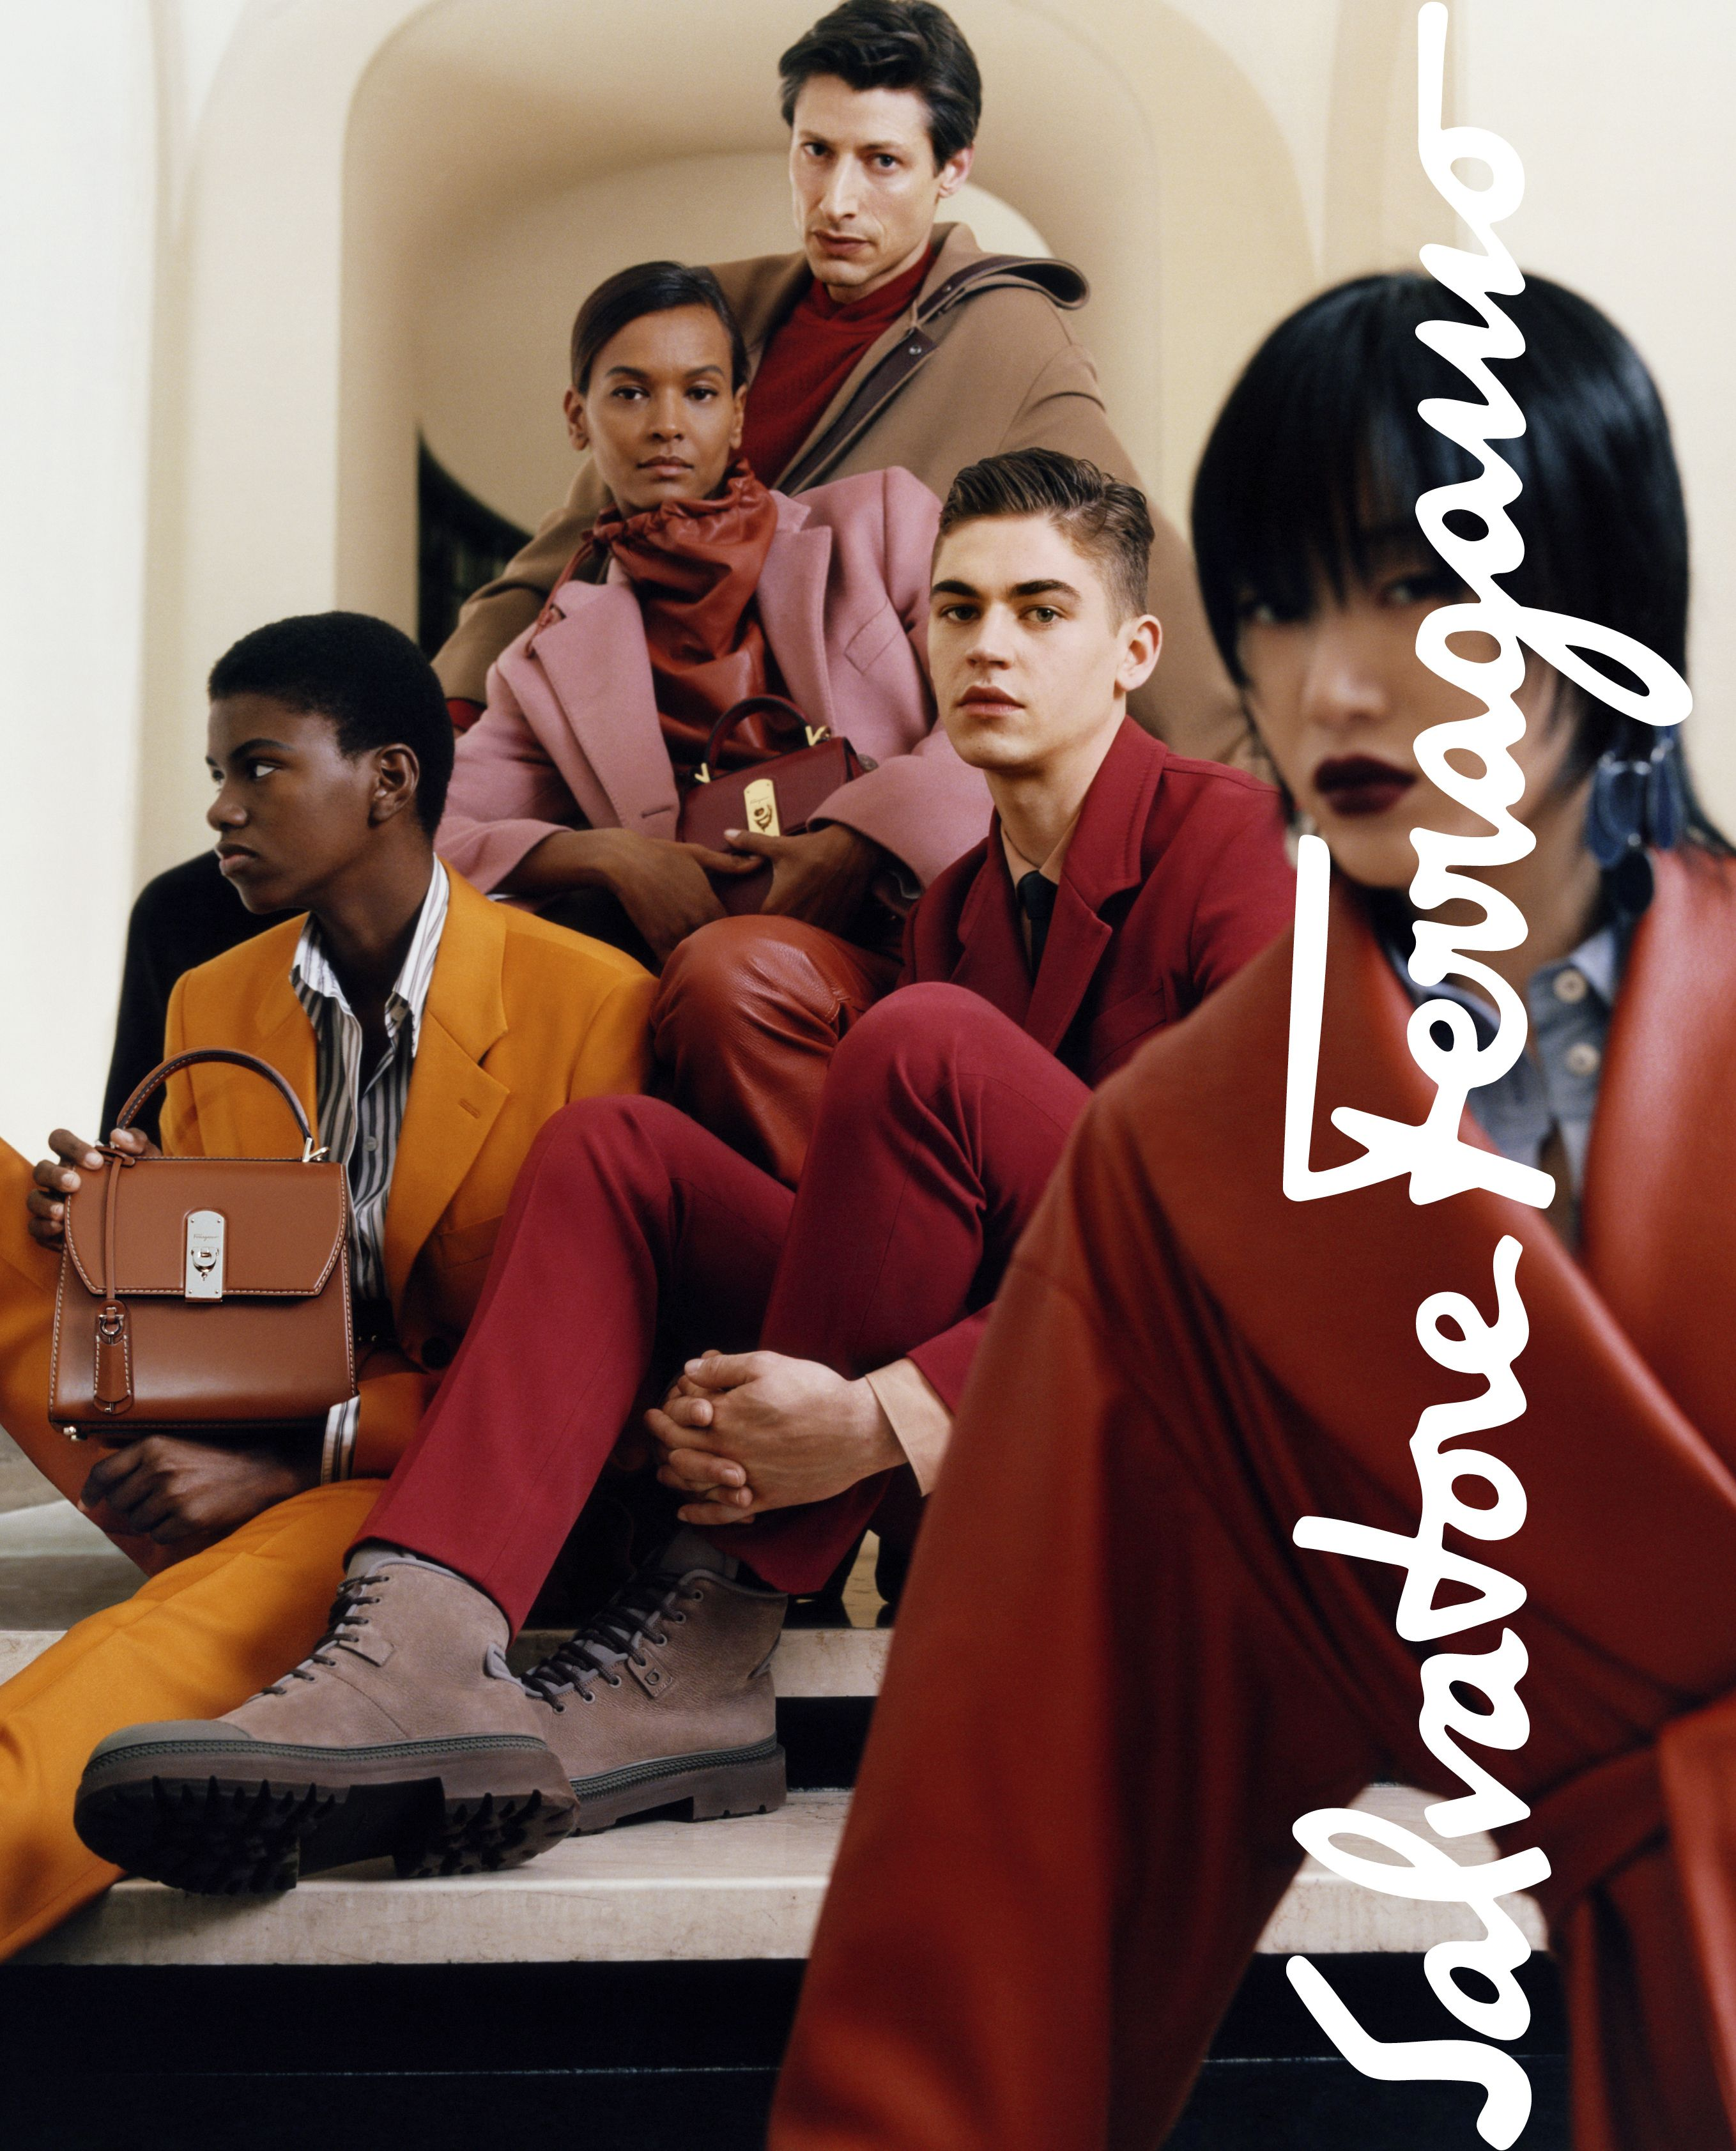 Hero Fiennes-Tiffin still looks good even at parties where no one seems to be having any fun in this campaign photo for Salvatore Ferragamo.